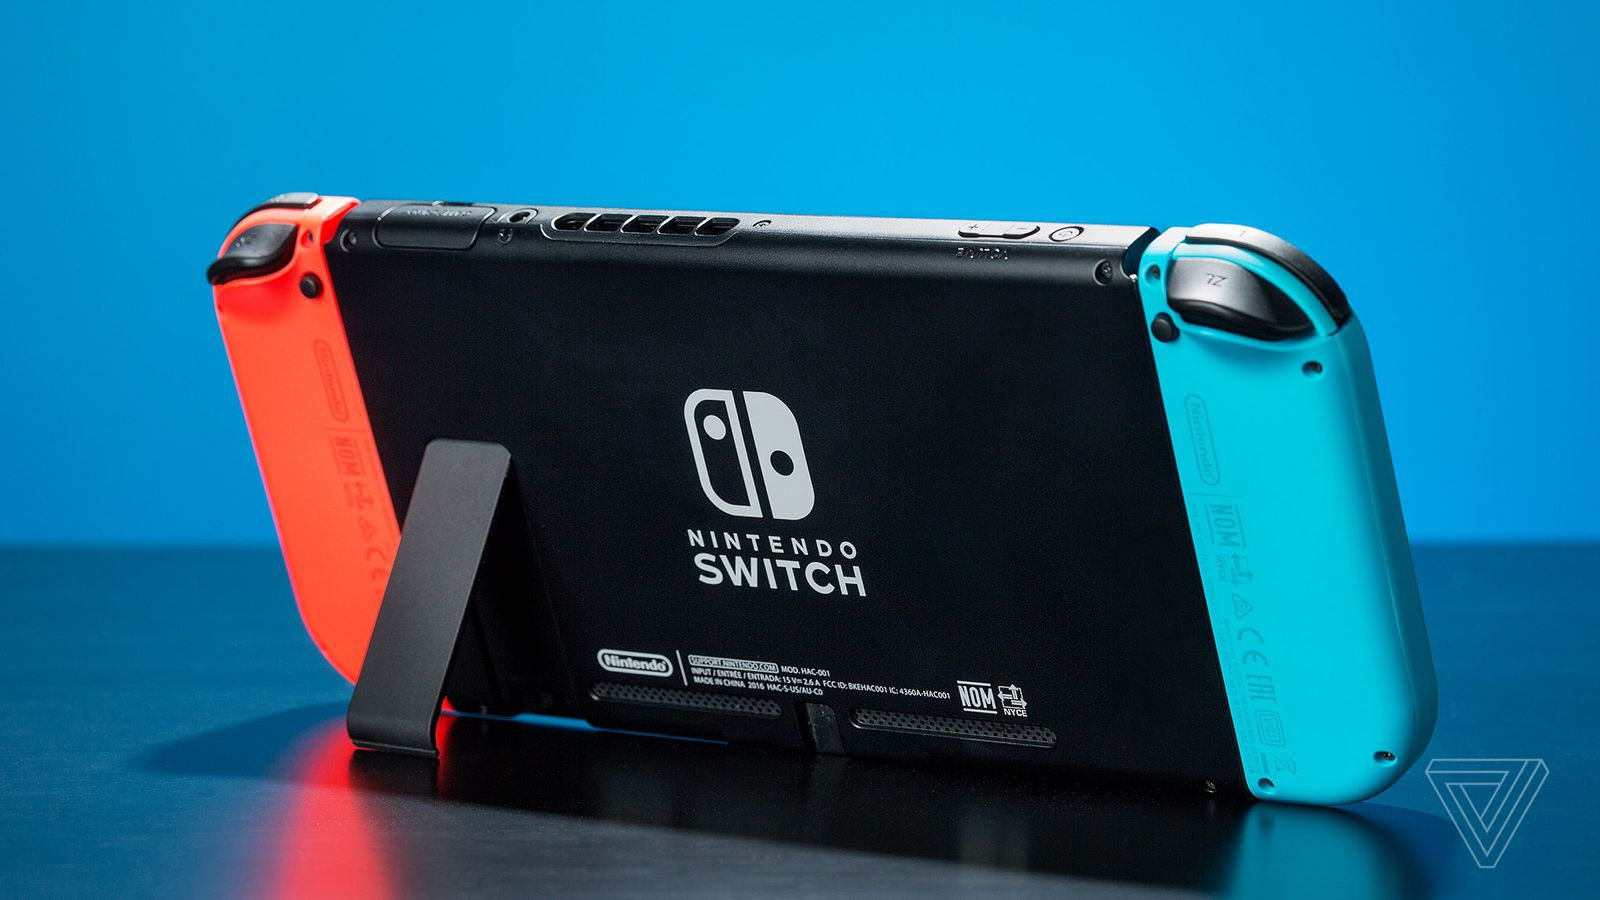 You can now purchase Nintendo Switch games with PayPal